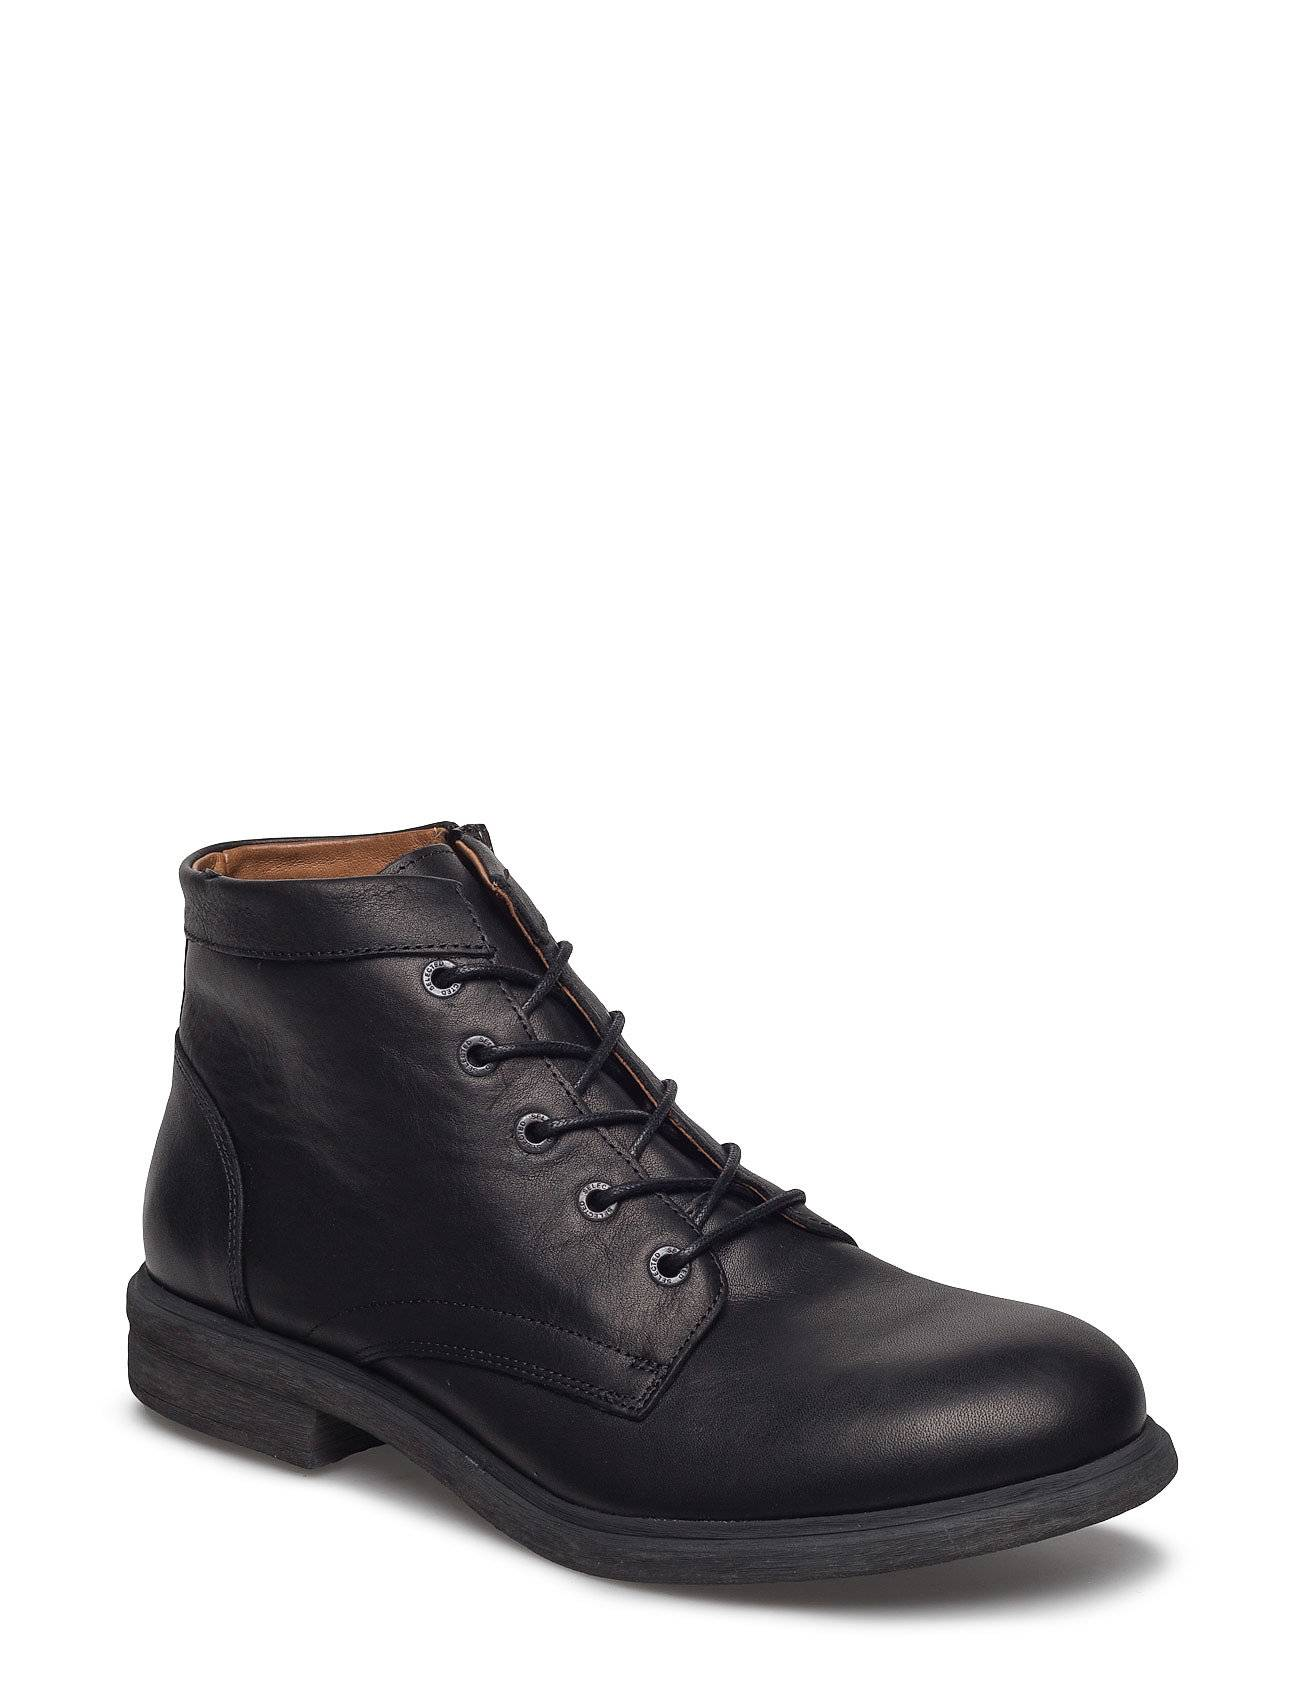 Selected Homme Shntrevor Leather Boot Sts